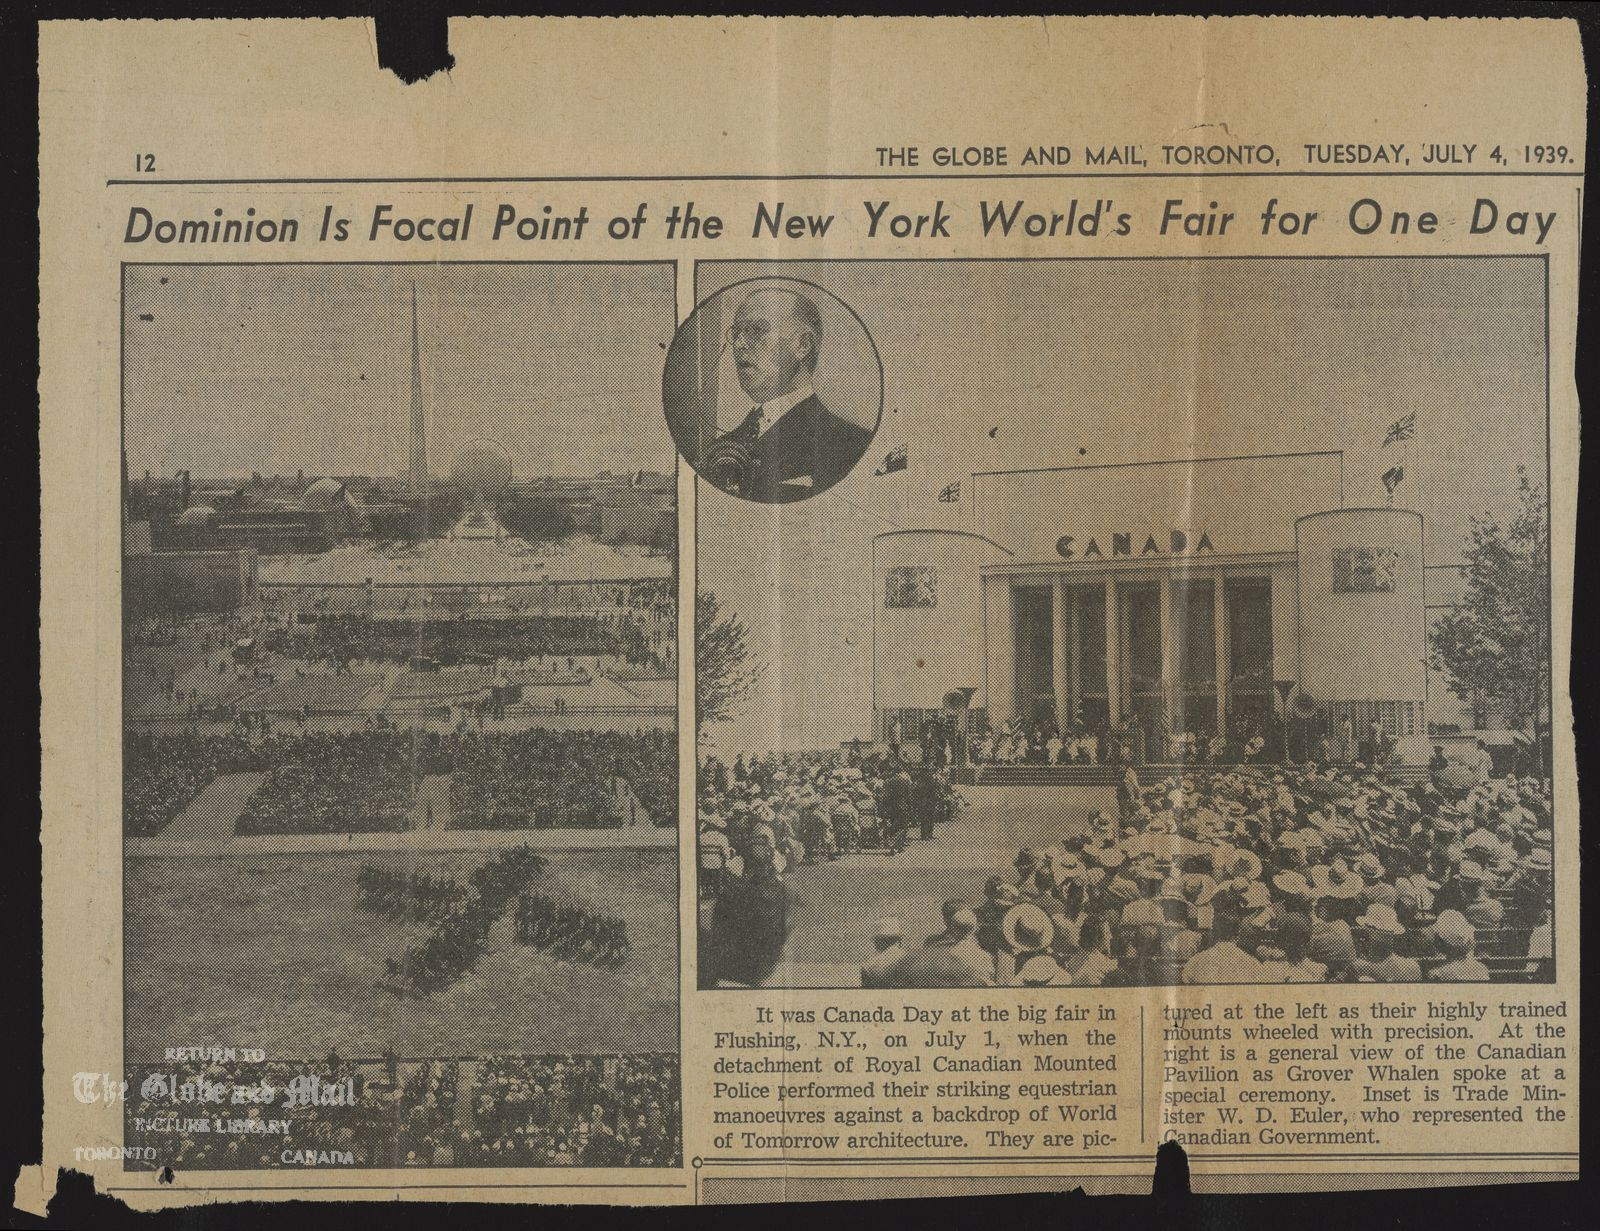 The notes written and typed on the back of this photograph, from the time it was printed, are as follows: Dominion Is Focal Point of the New York World's Fair for One Day [Published caption: It was Canada Day at the big fair in Flushing, N.Y., on July 1, when the detachment of Royal Canadian Mounted Police performed their striking equestrian manoeuvres against a backdrop of World of Tomorrow architecture. They are pictured at the left as their highly trained mounts wheeled with precision. At the right is a general view of the Canadian Pavilion as Grover Whalen spoke at a special ceremony. Inset is Trade Minister W. D. Euler, who represented the Canadian Government.]July 1, 1939,